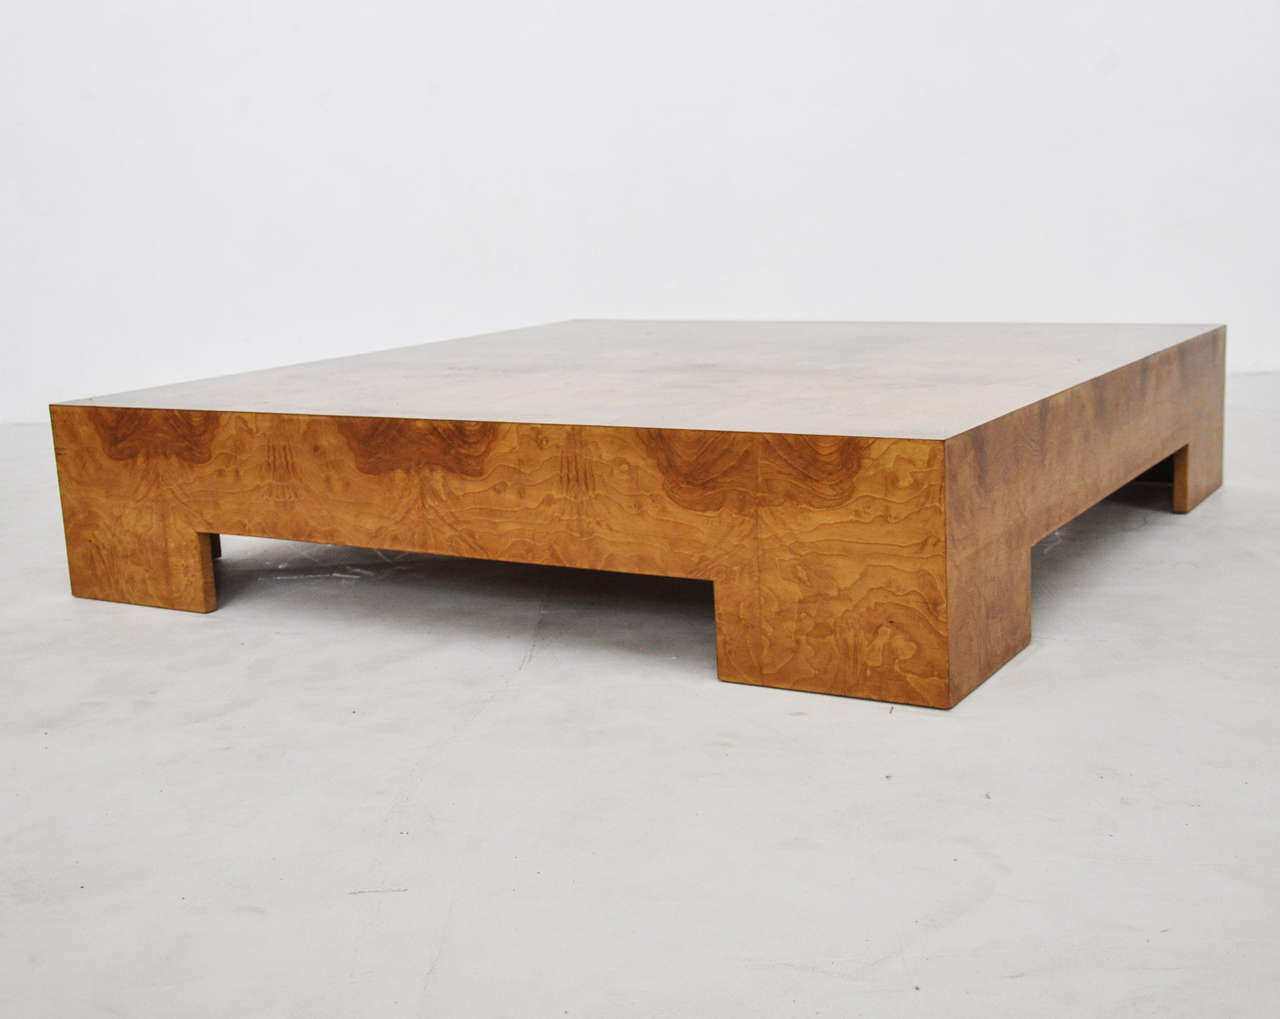 Milo Baughman Low Burl Wood Coffee Table Image 2